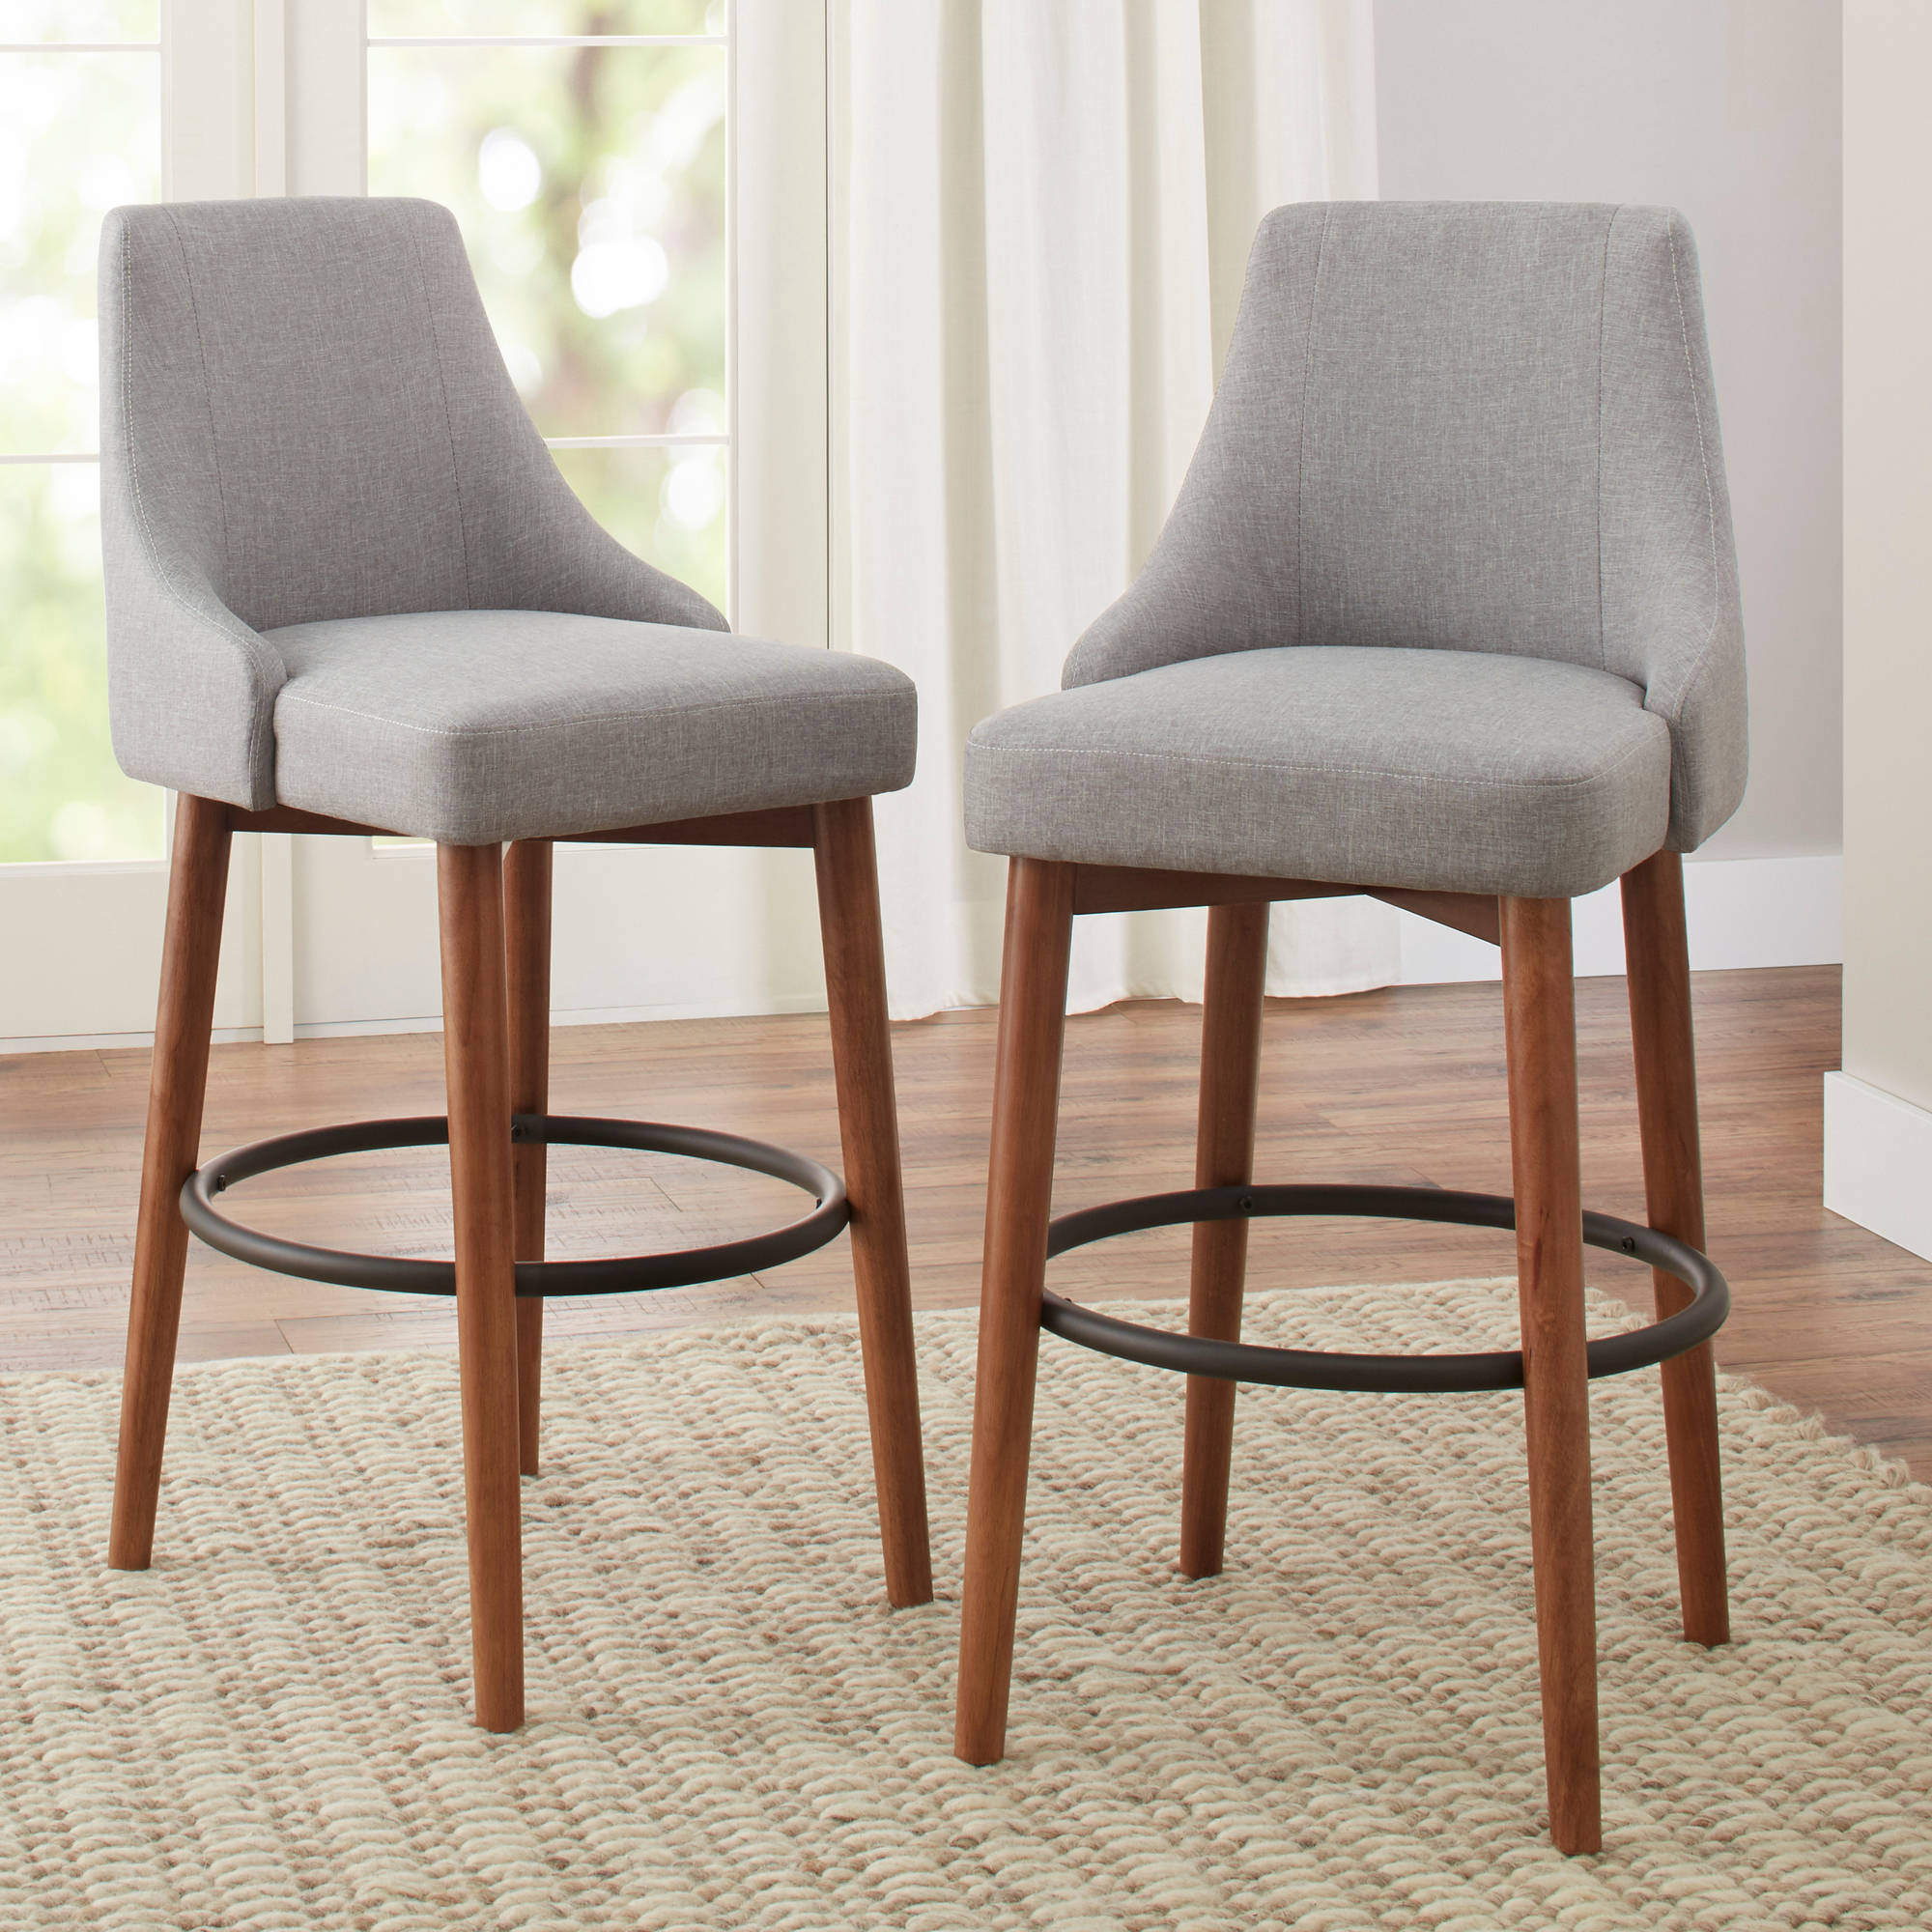 better homes and gardens reed mid century modern barstool set of 2 smoke